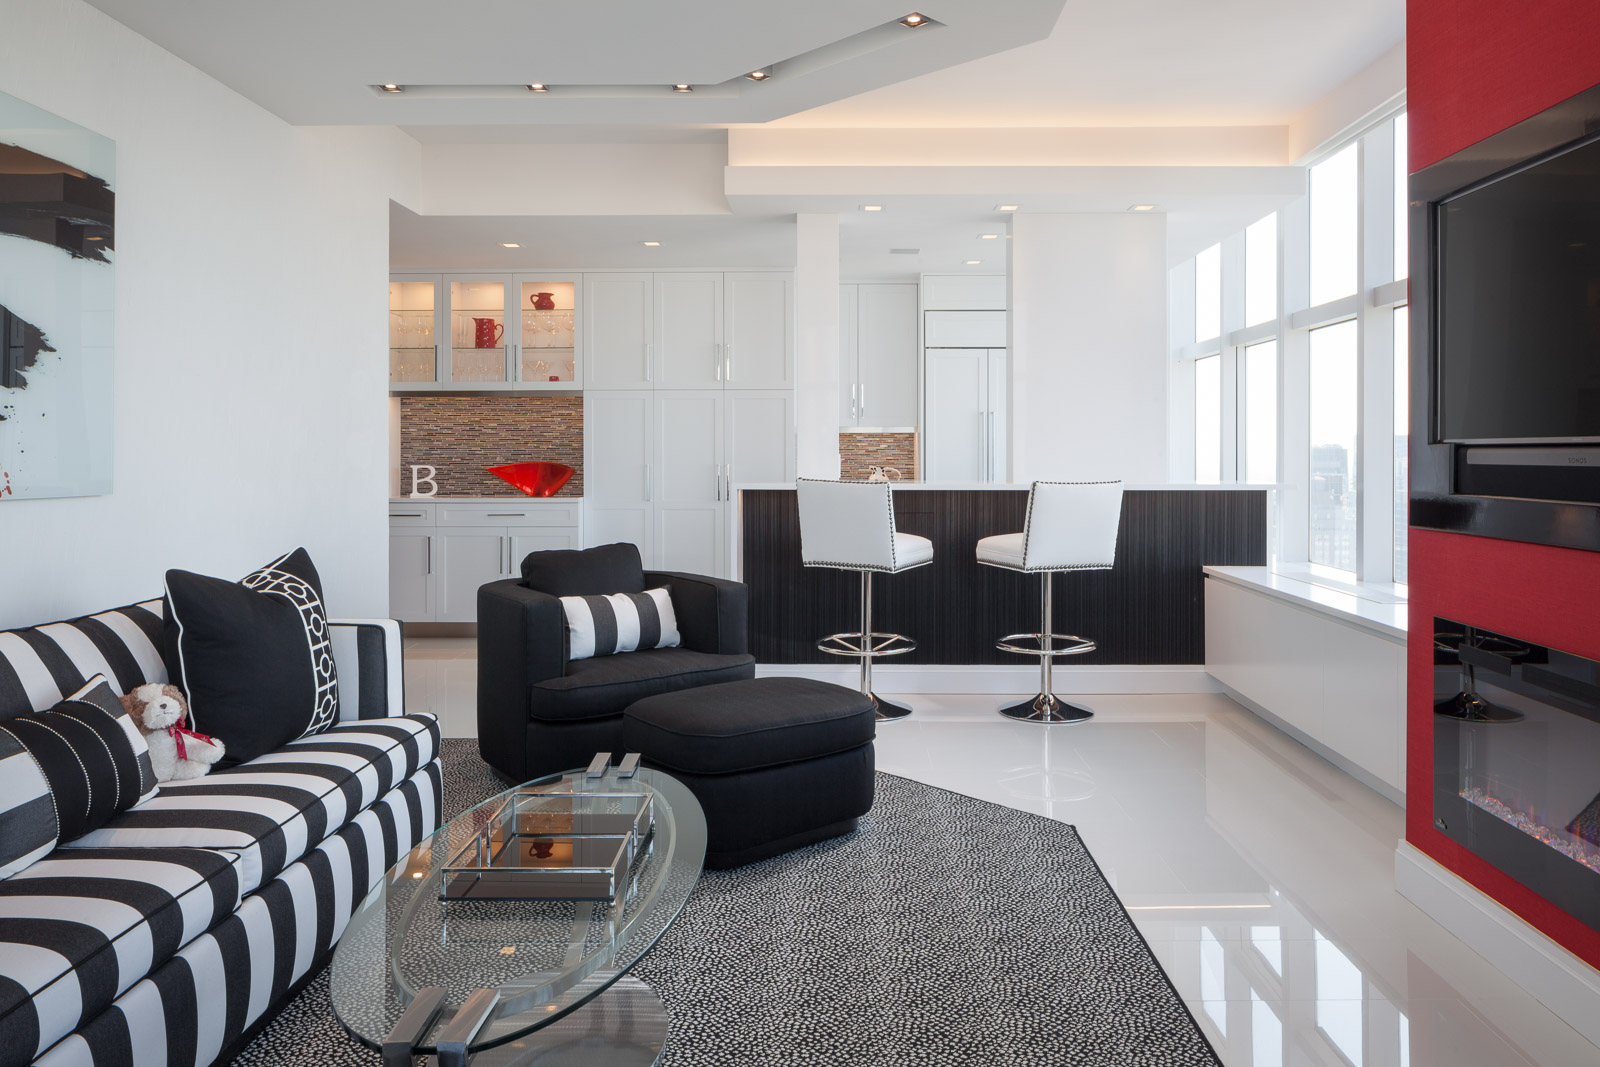 Contemporary Interior Design apartment, New York City